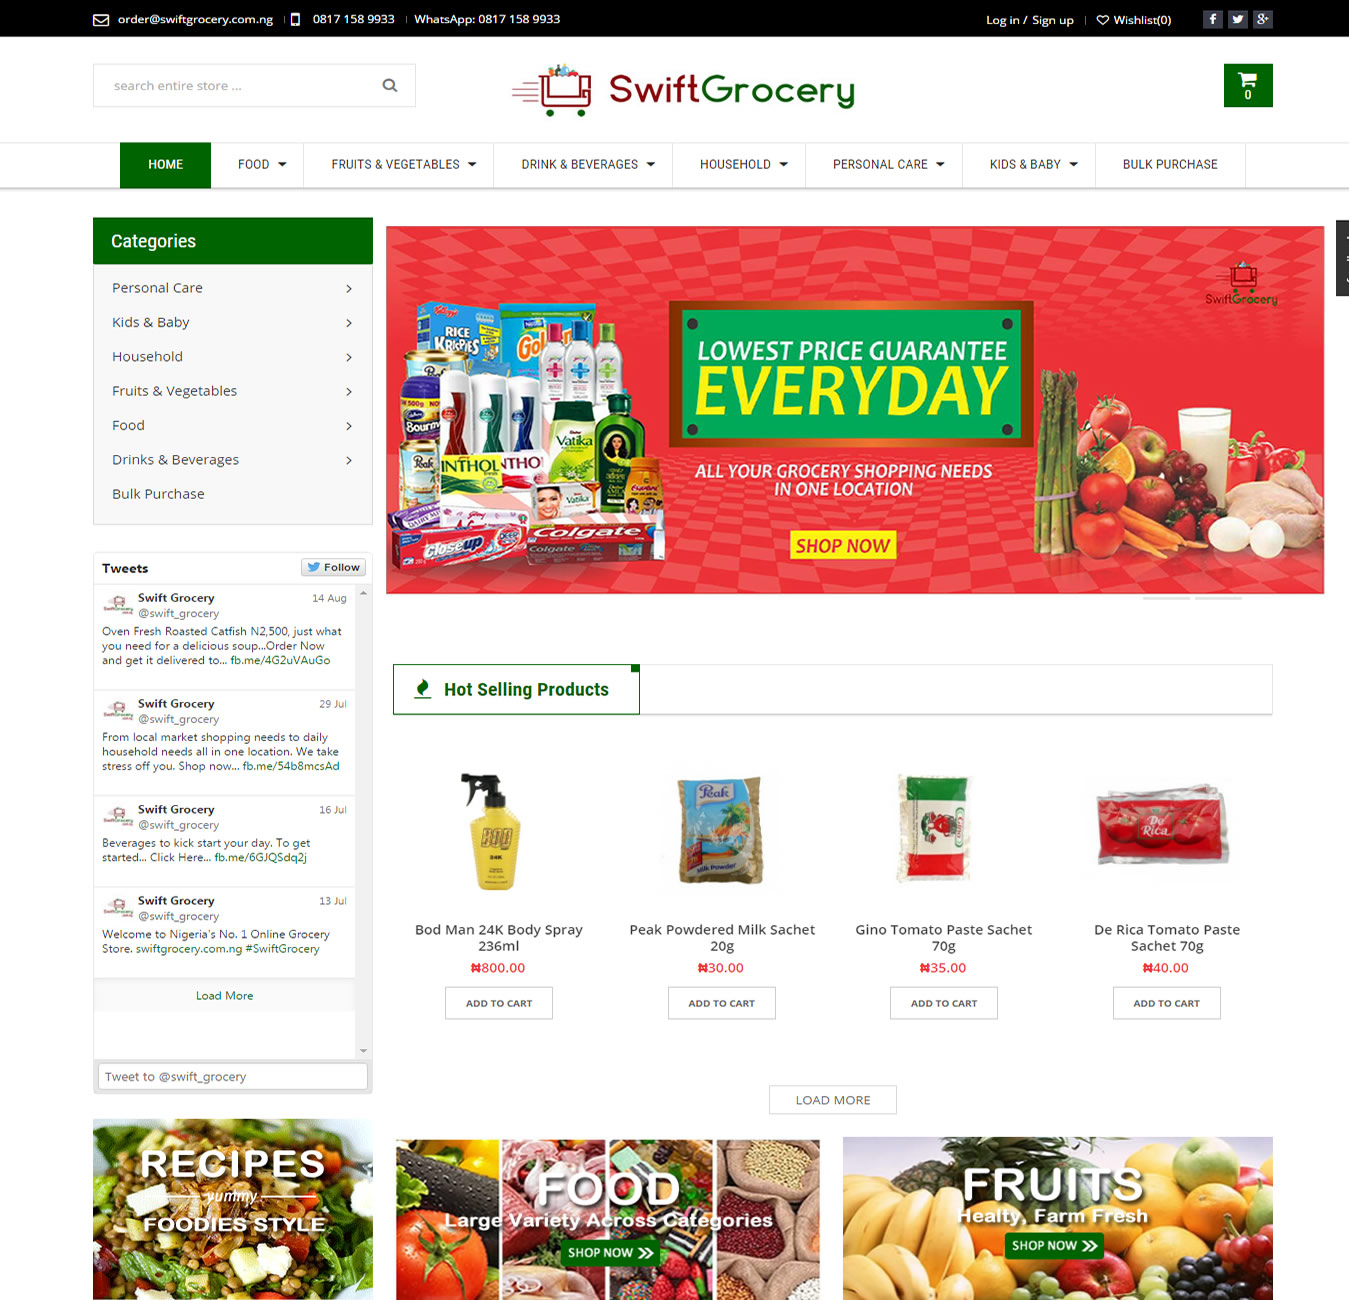 SwiftGrocery Website